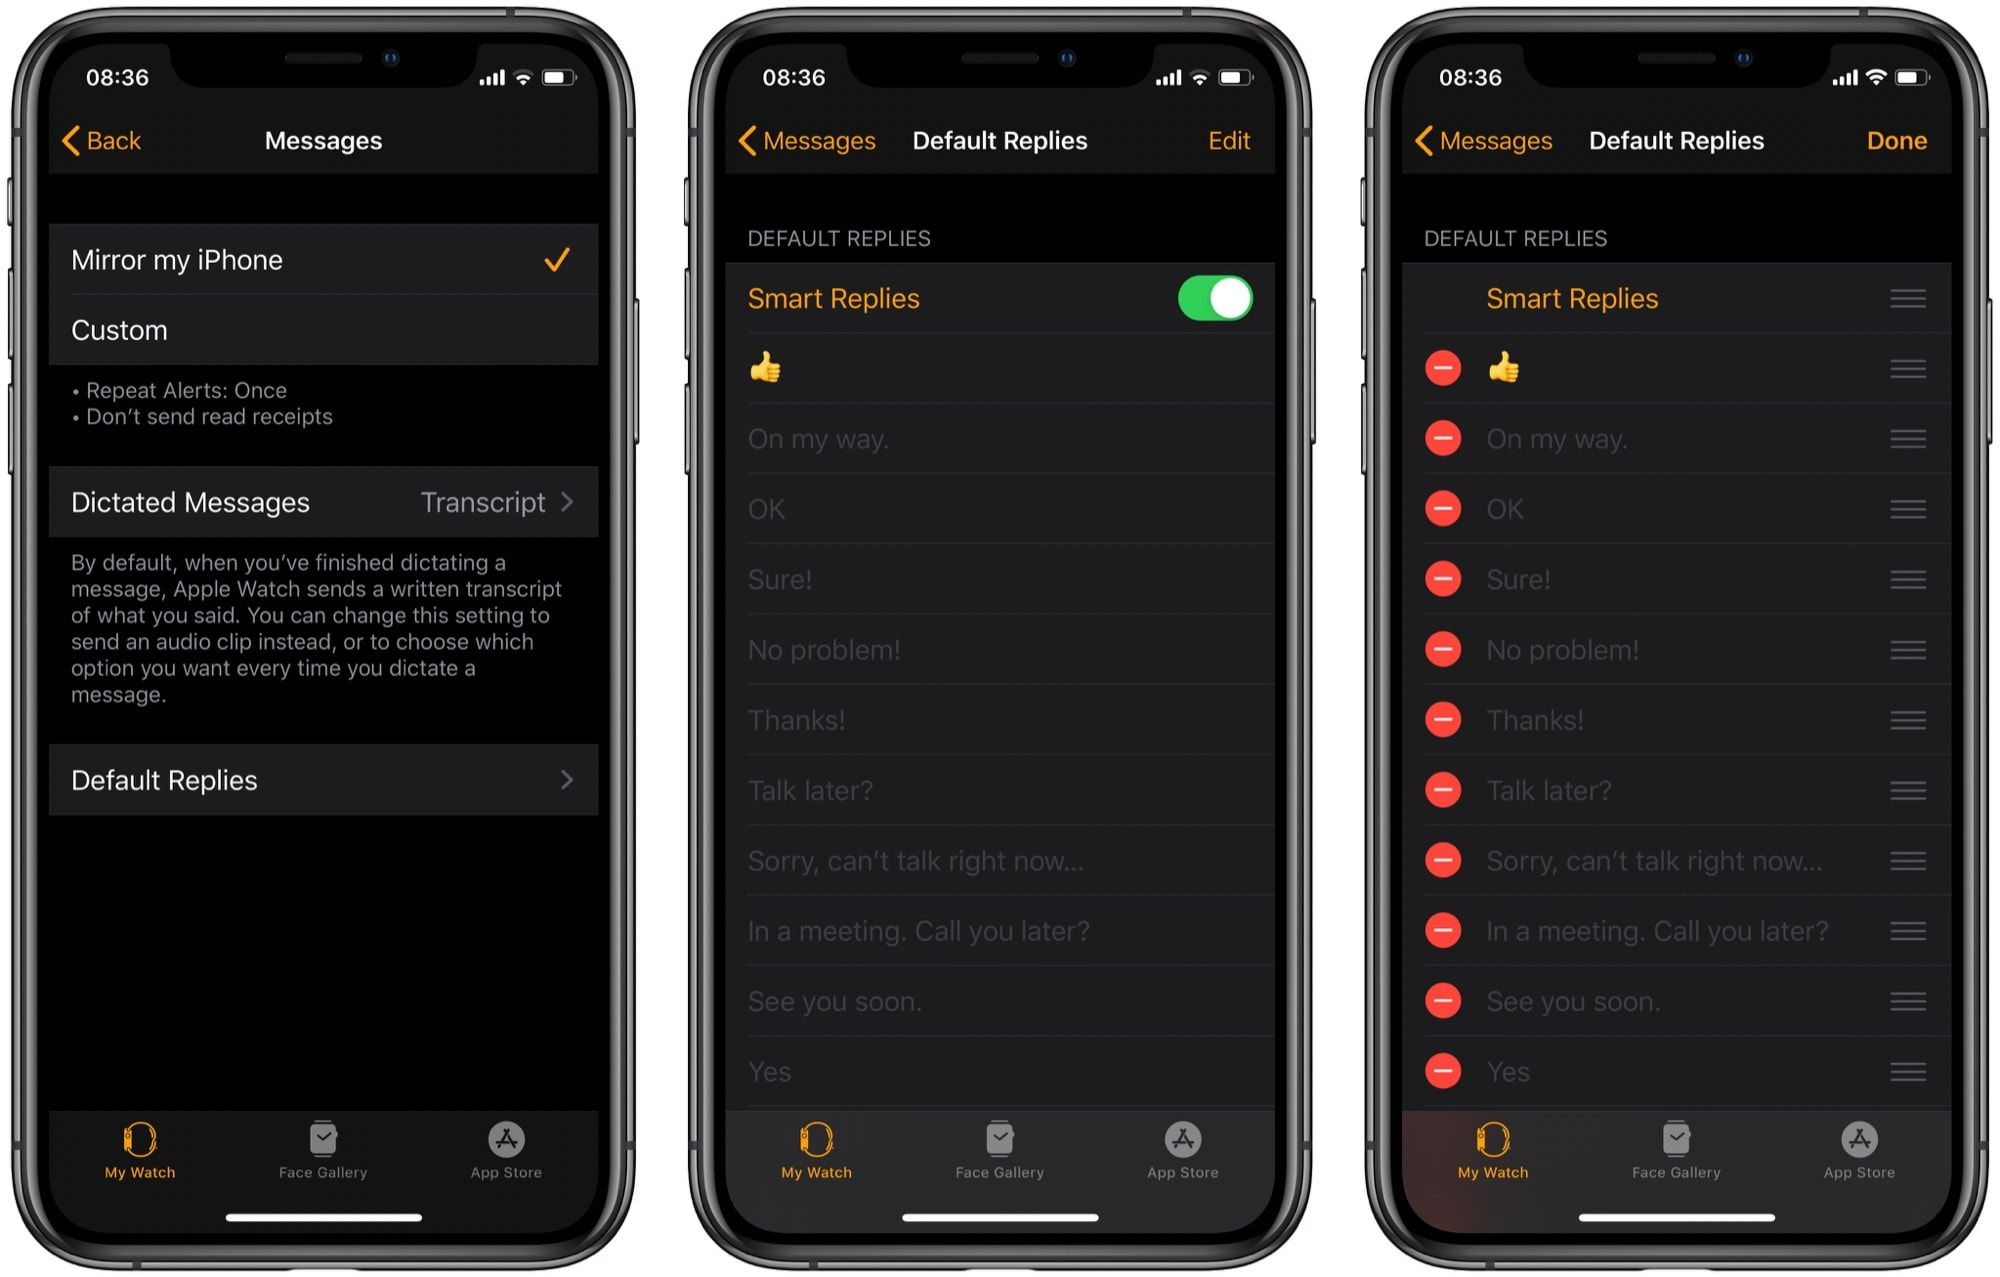 Add, remove and edit Apple Watch smart replies here.